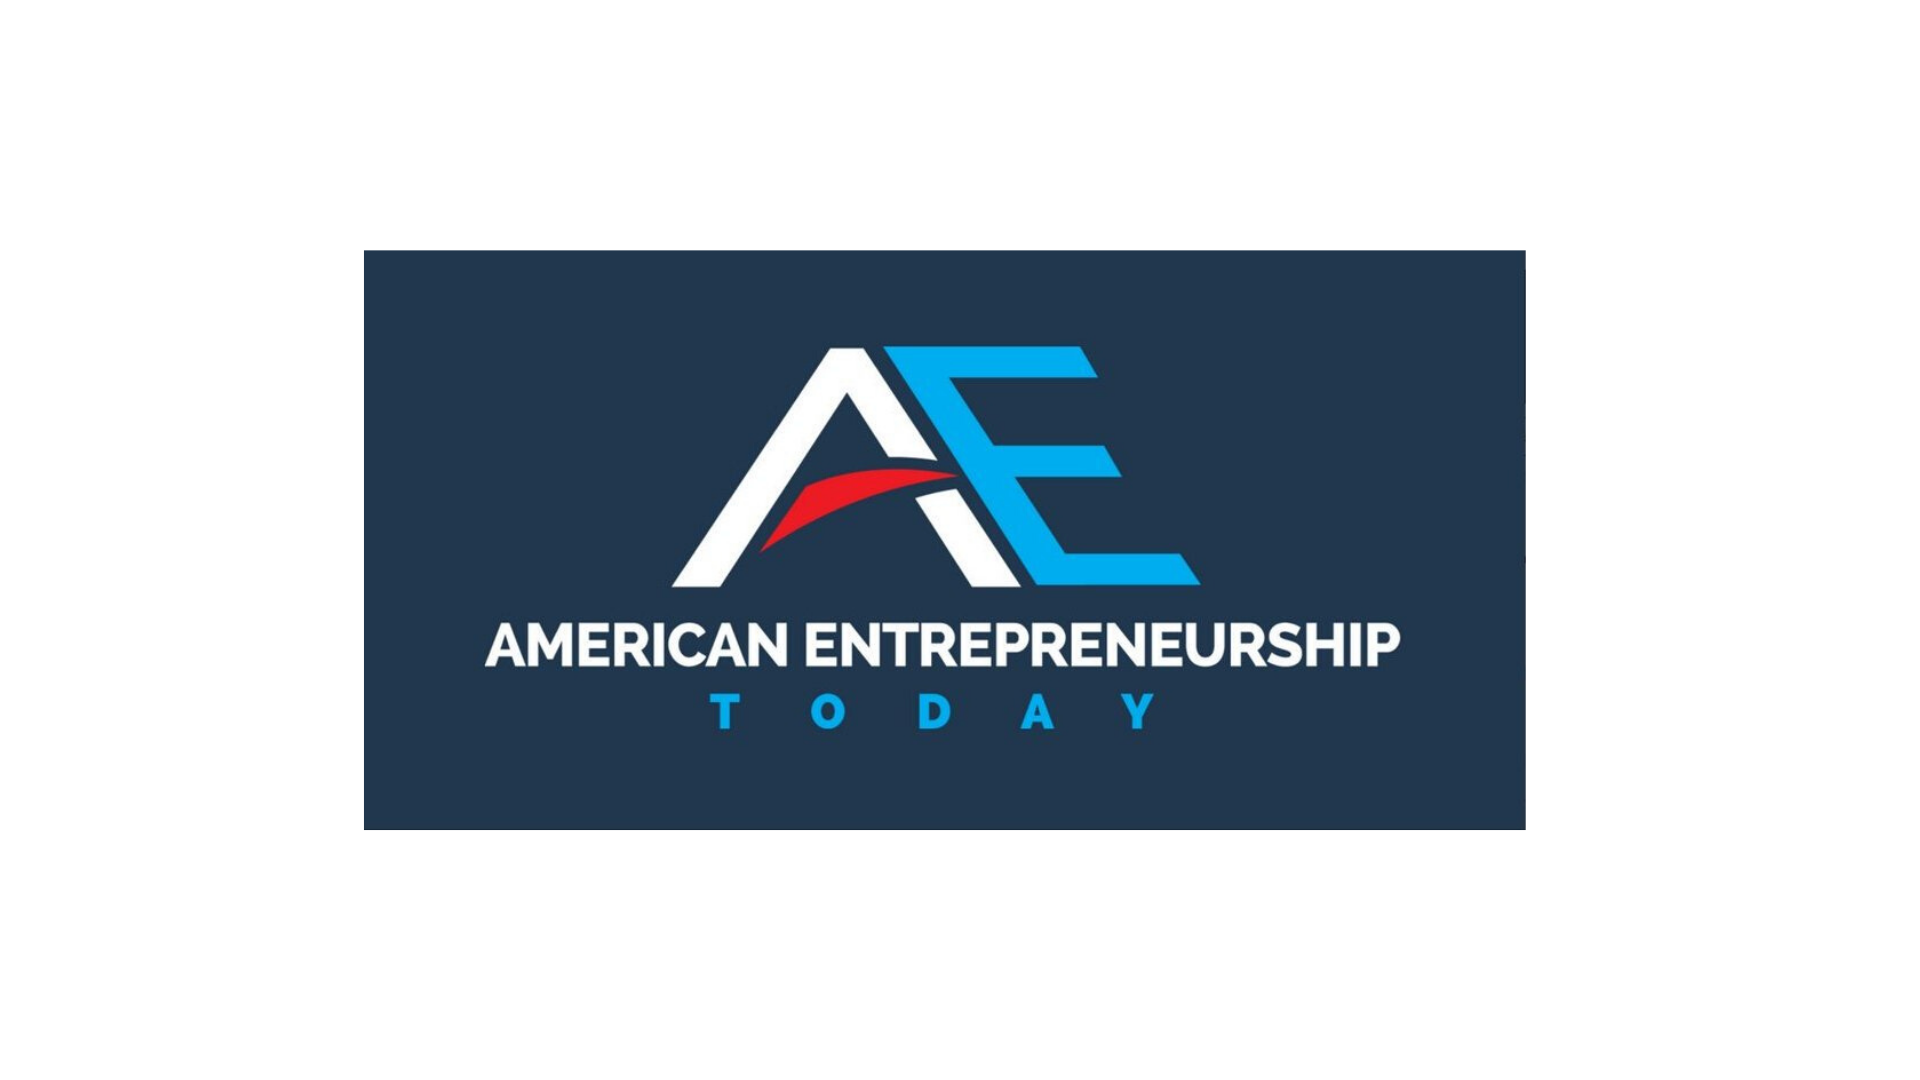 American Entrepreneurship Today Chloe Capital